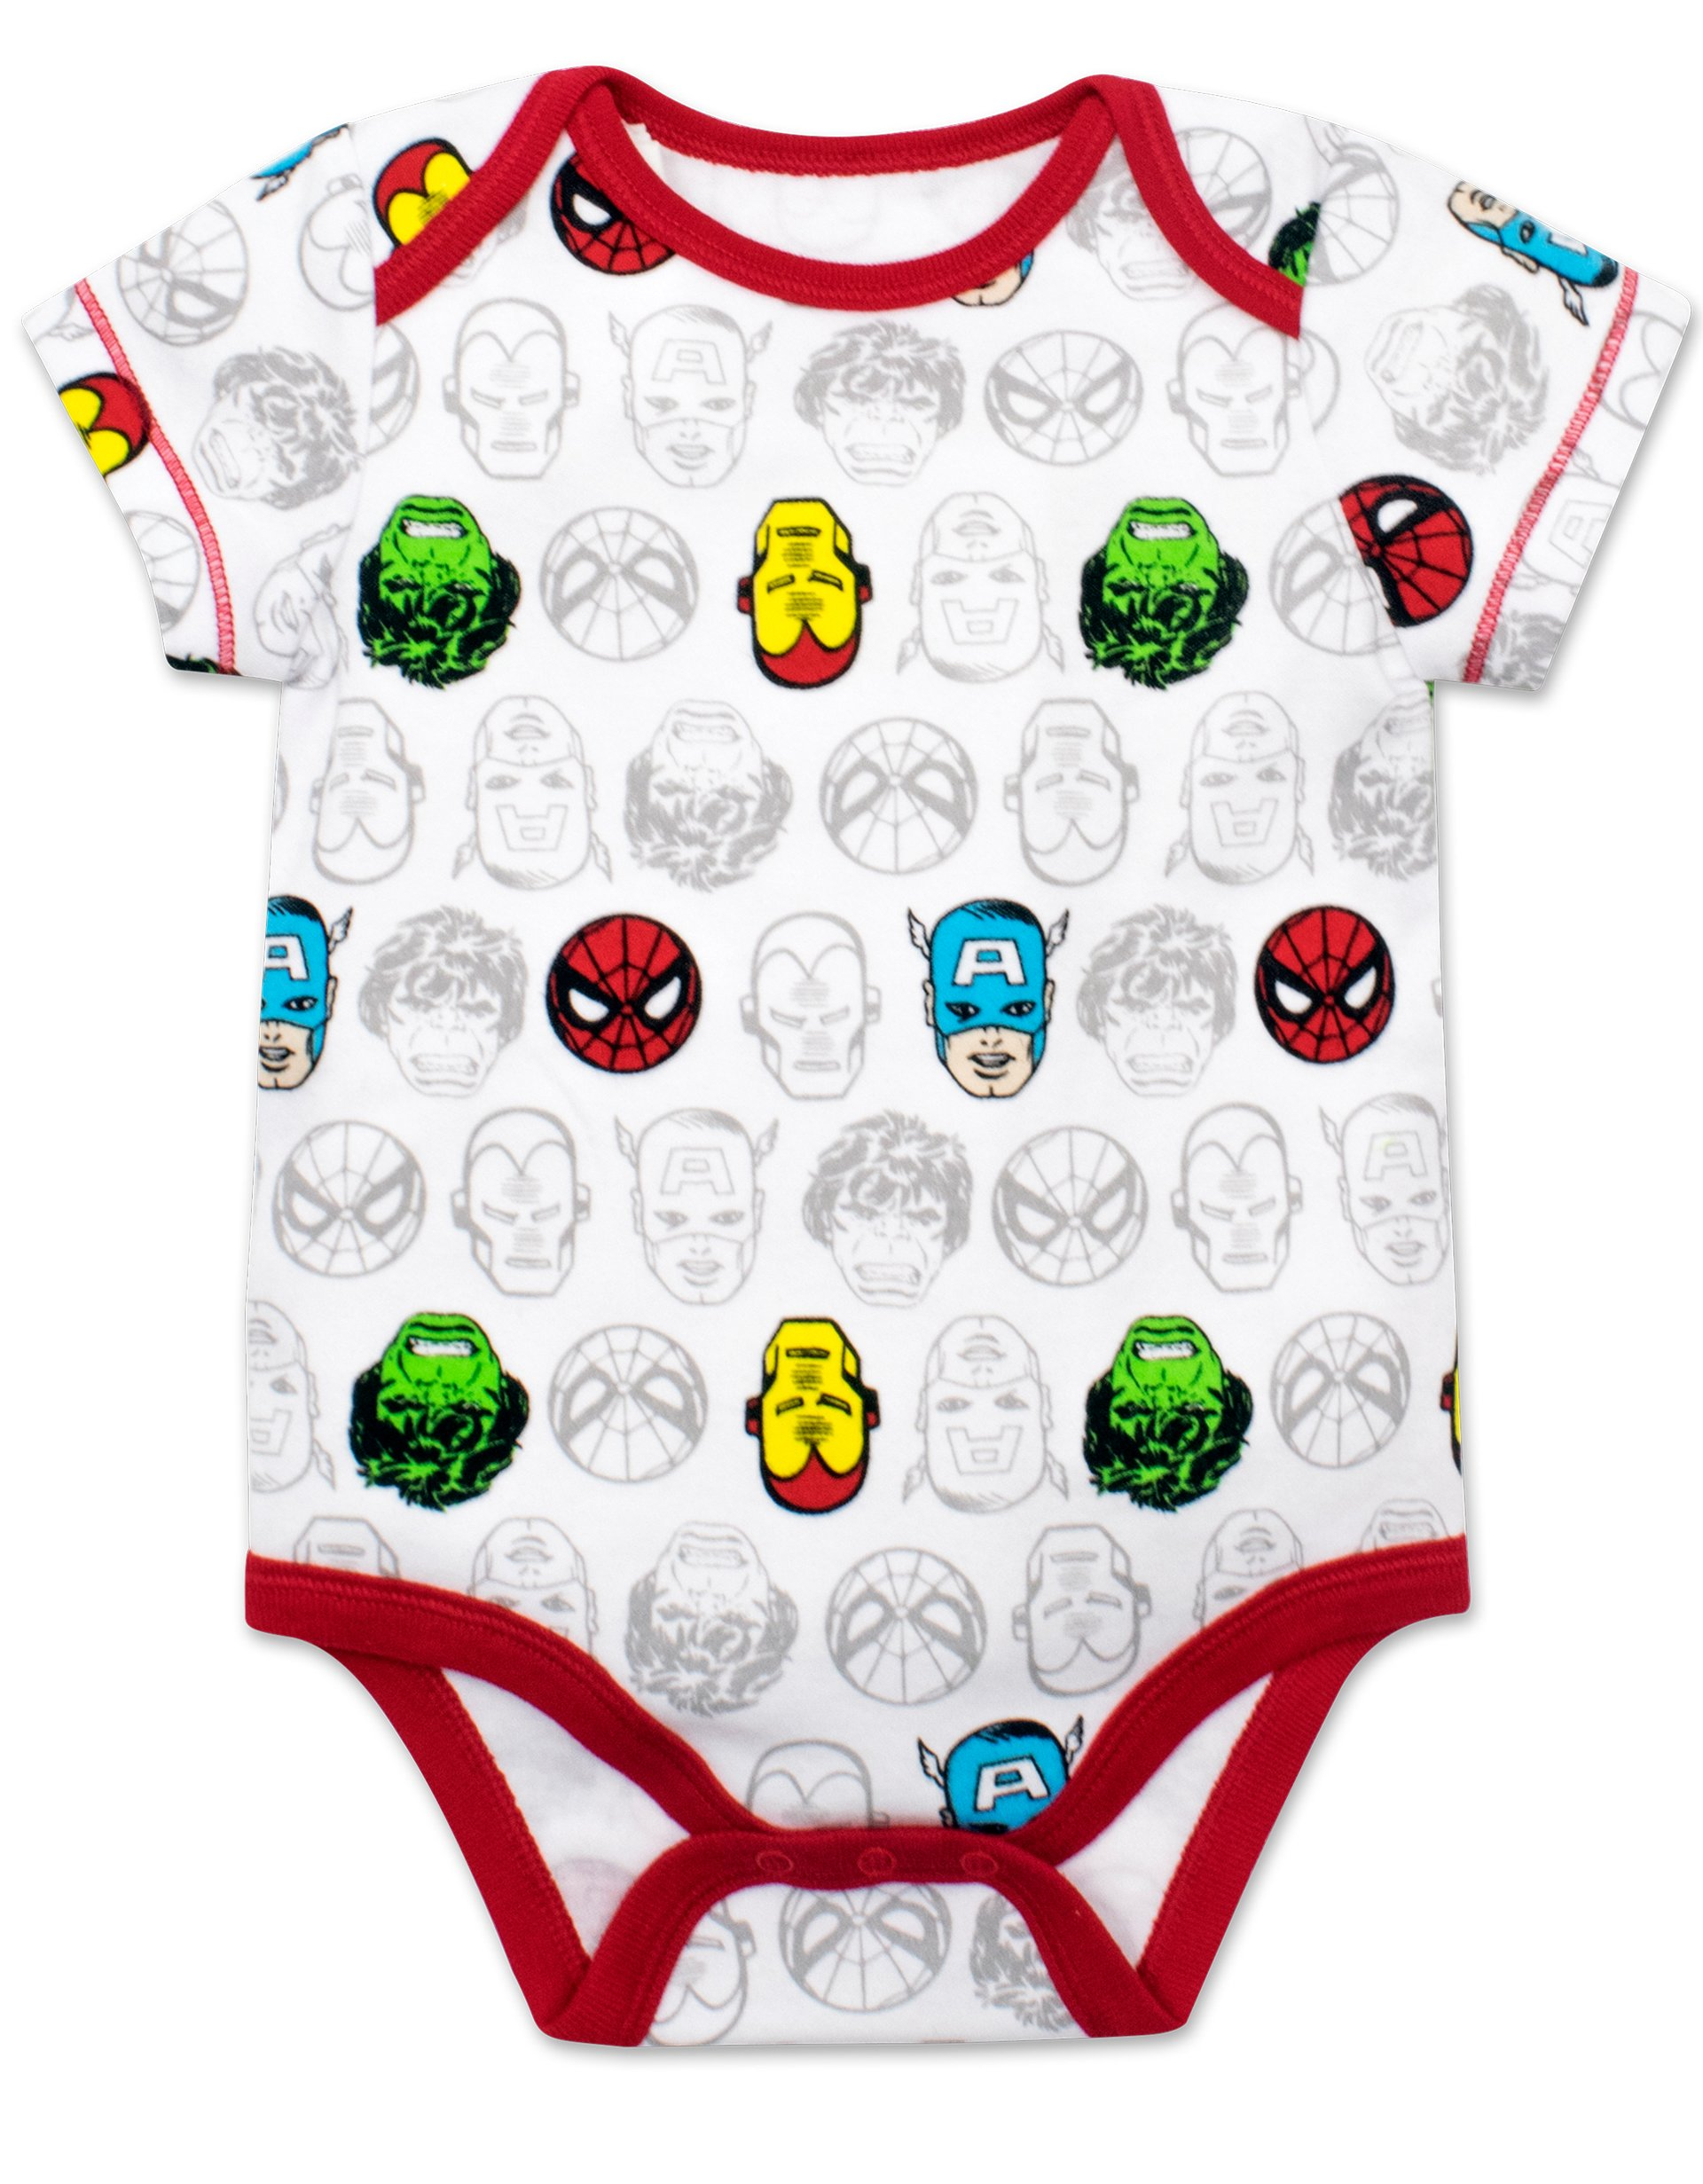 Marvel Baby Boys' 5 Pack Onesies - The Hulk, Spiderman, Iron Man and Captain America (3-6 Months) by Marvel (Image #4)